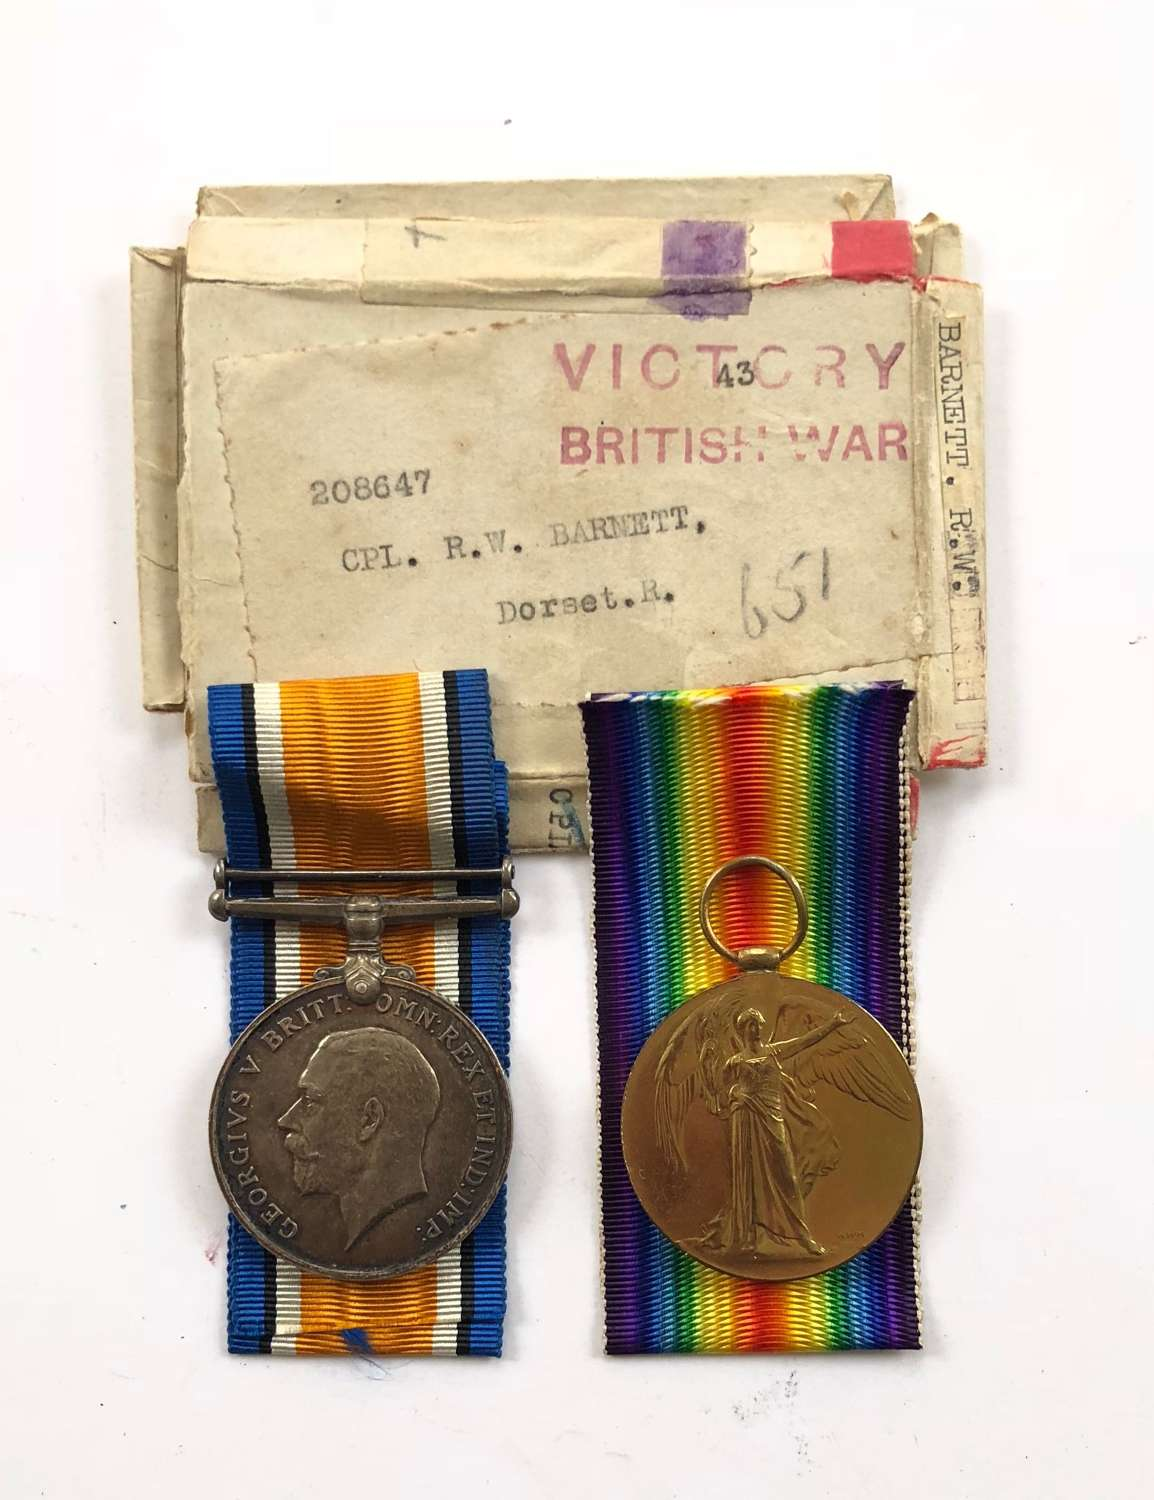 WW1 6th Bn Dorsetshire Regiment 1918 Casualty Pair of Medals.